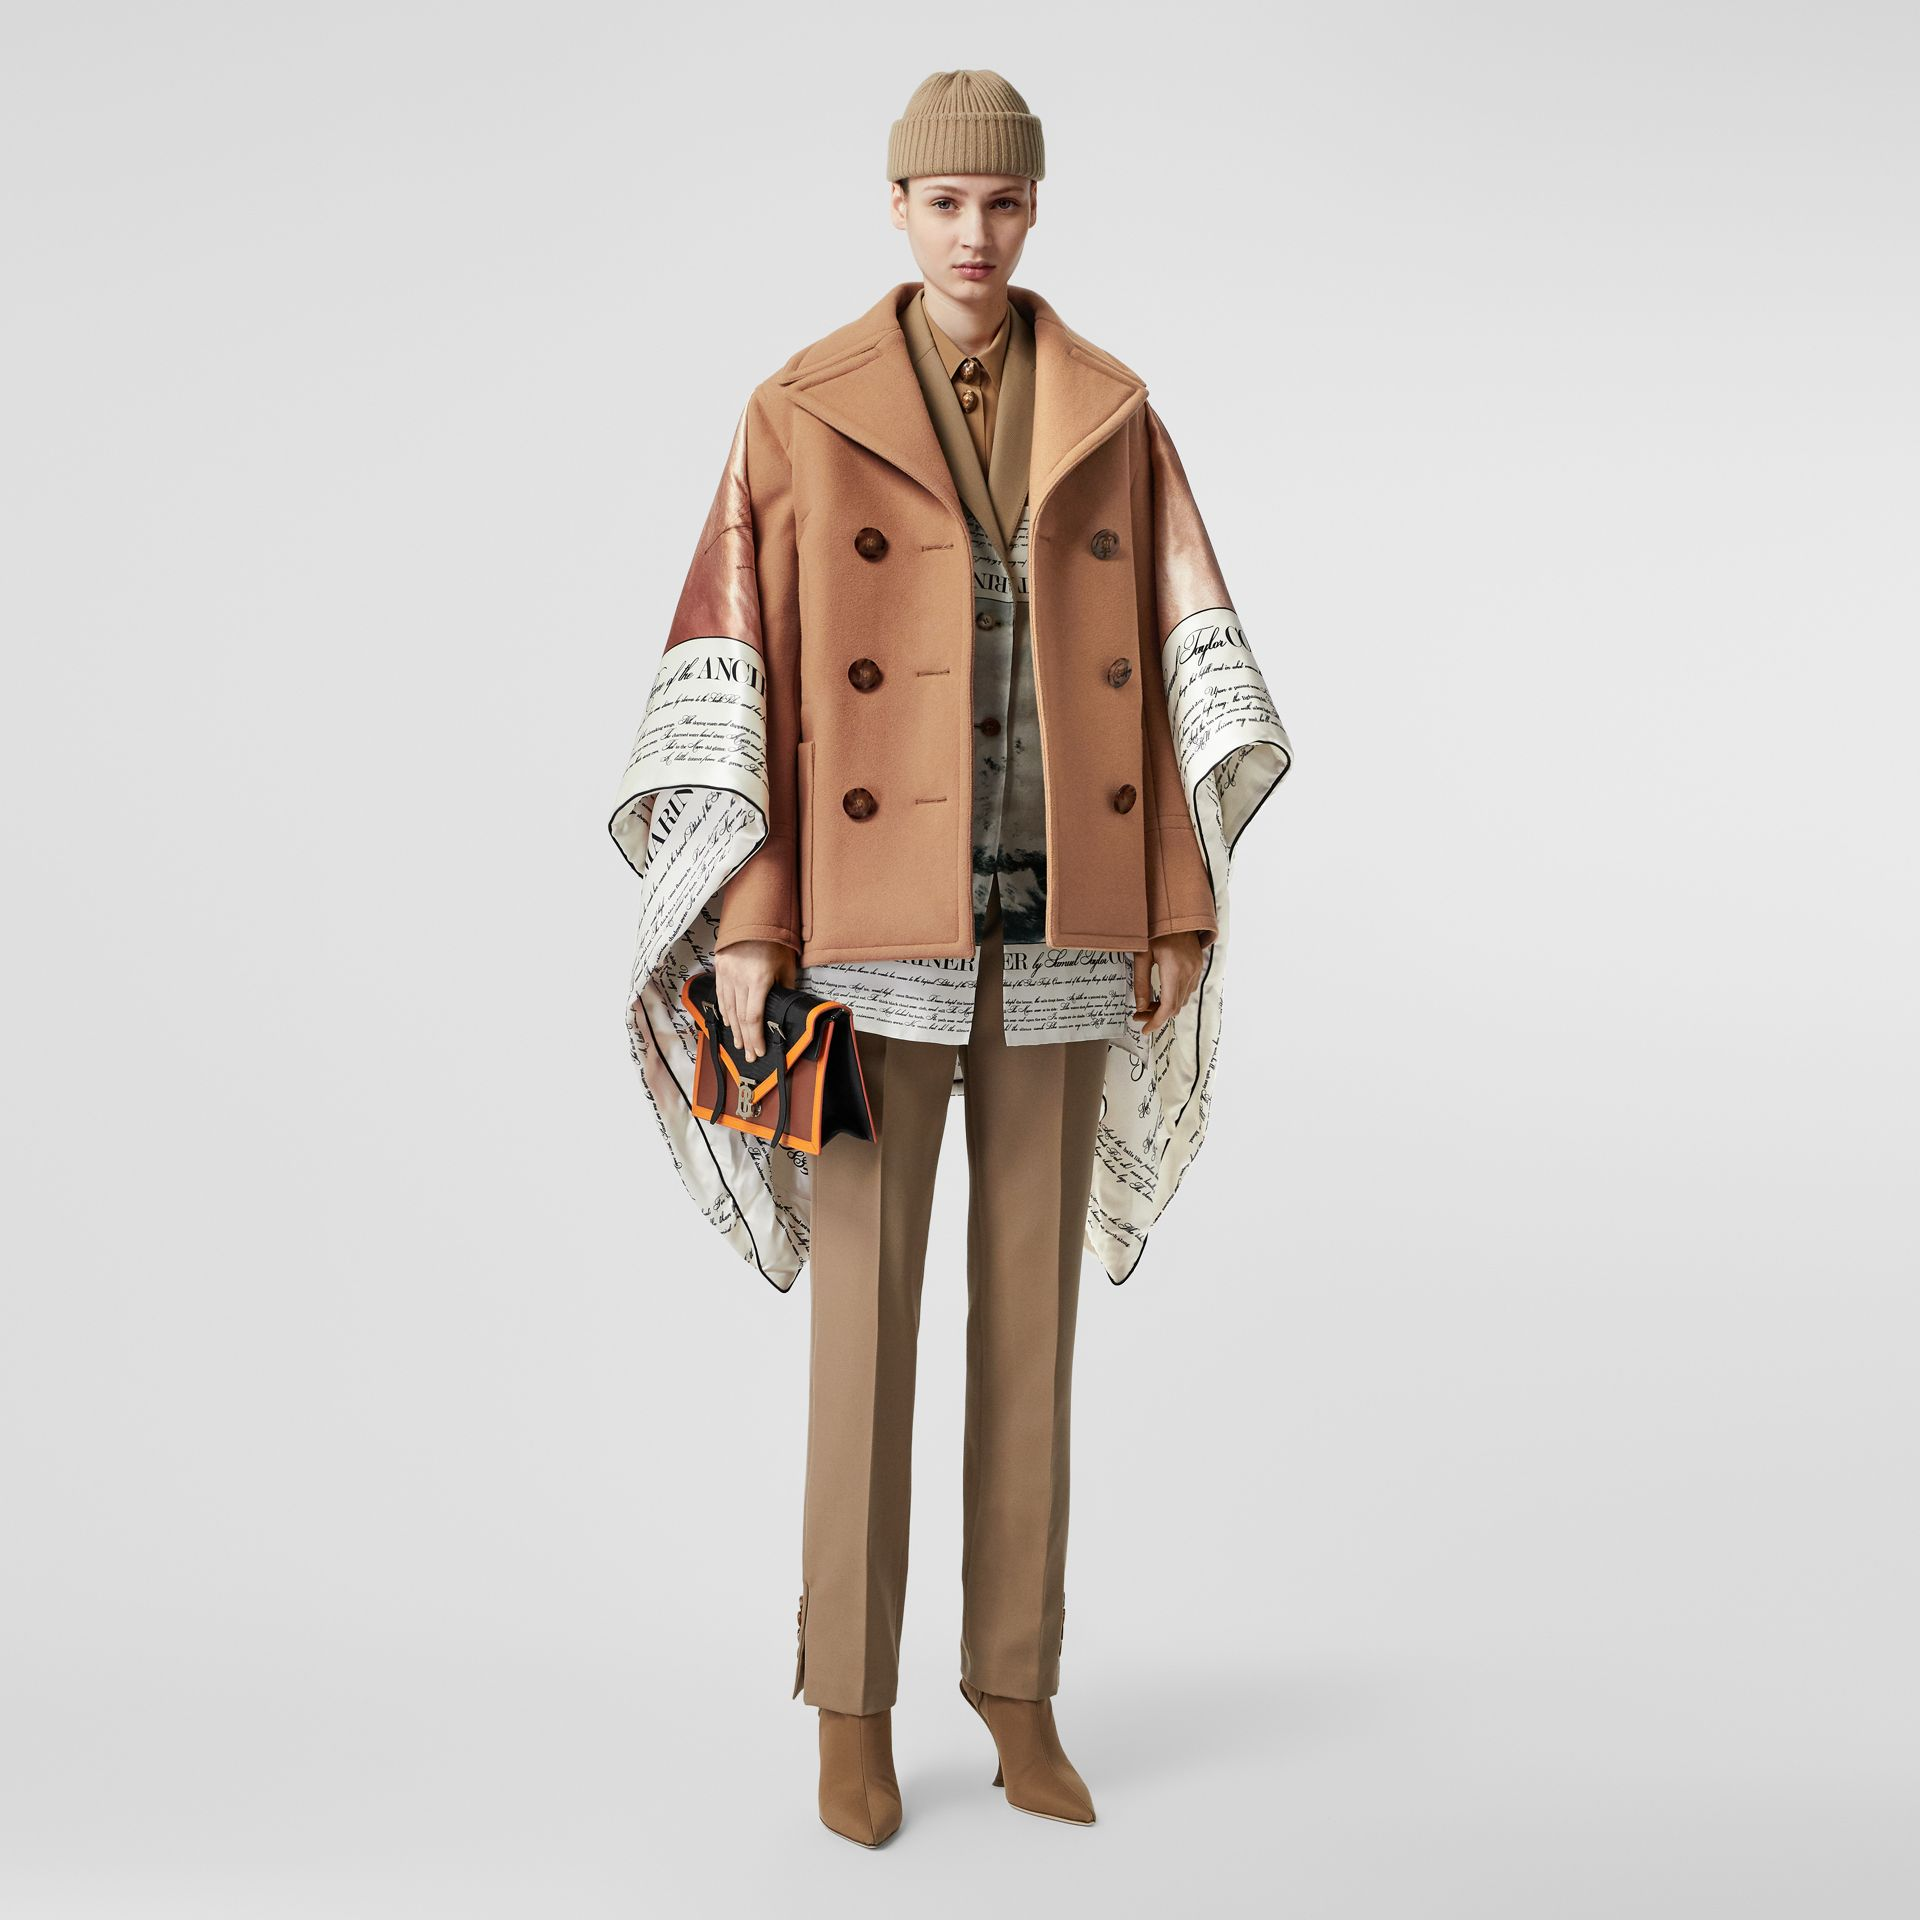 Mariner Print Blanket Detail Technical Wool Pea Coat in Warm Camel - Women | Burberry United Kingdom - gallery image 3